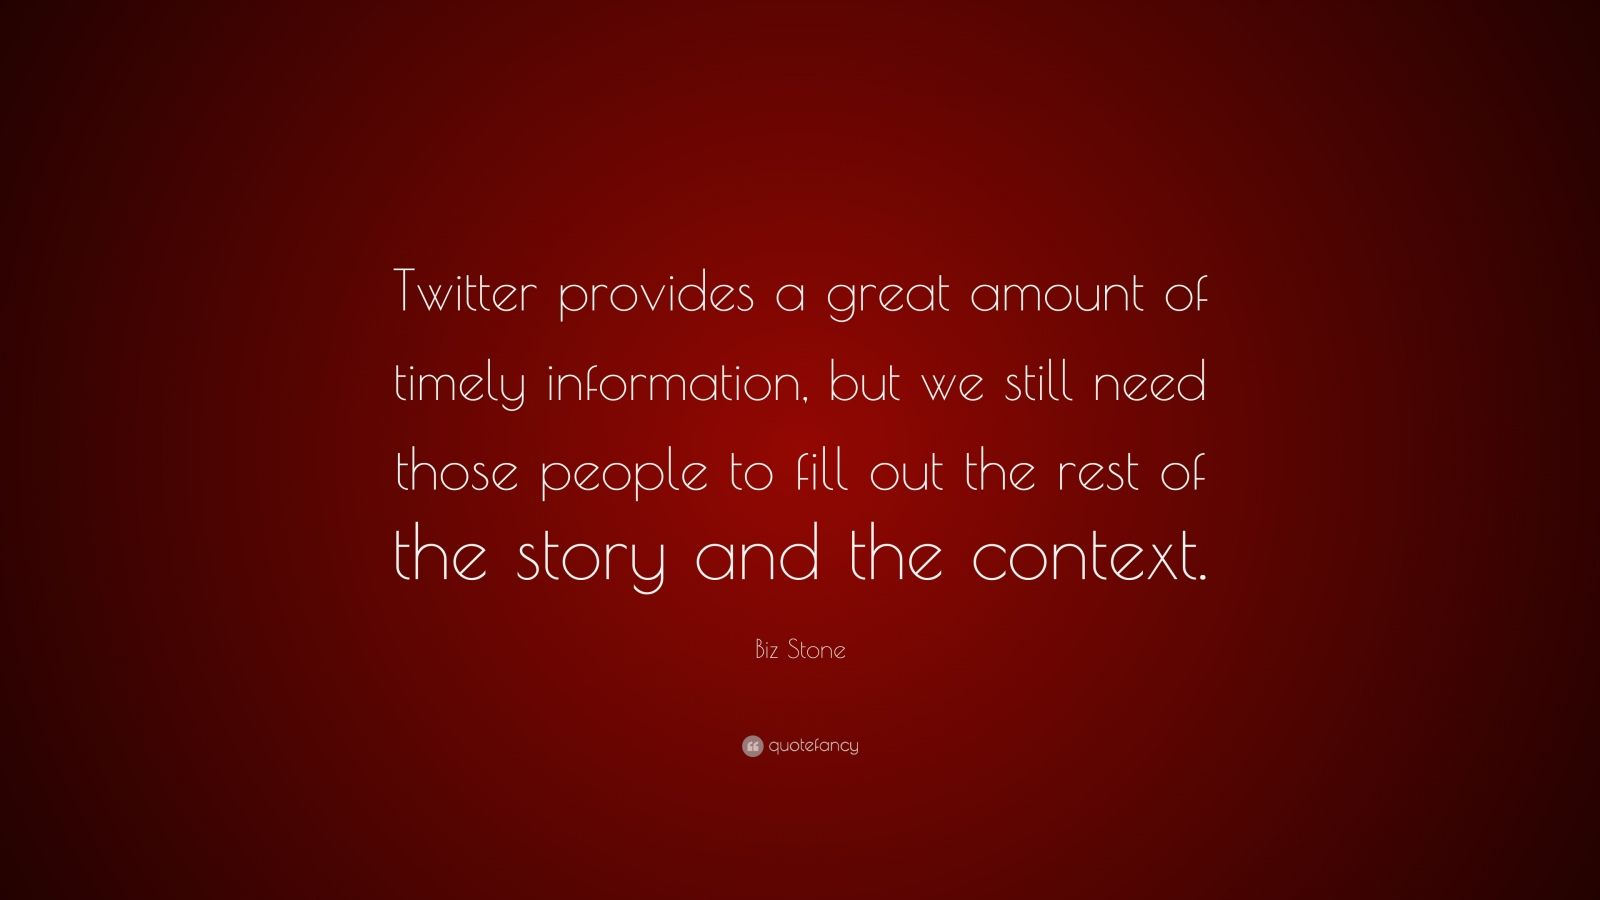 """Biz Stone Quote: """"Twitter provides a great amount of timely information, but we still need those people to fill out the rest of the story and the context."""""""